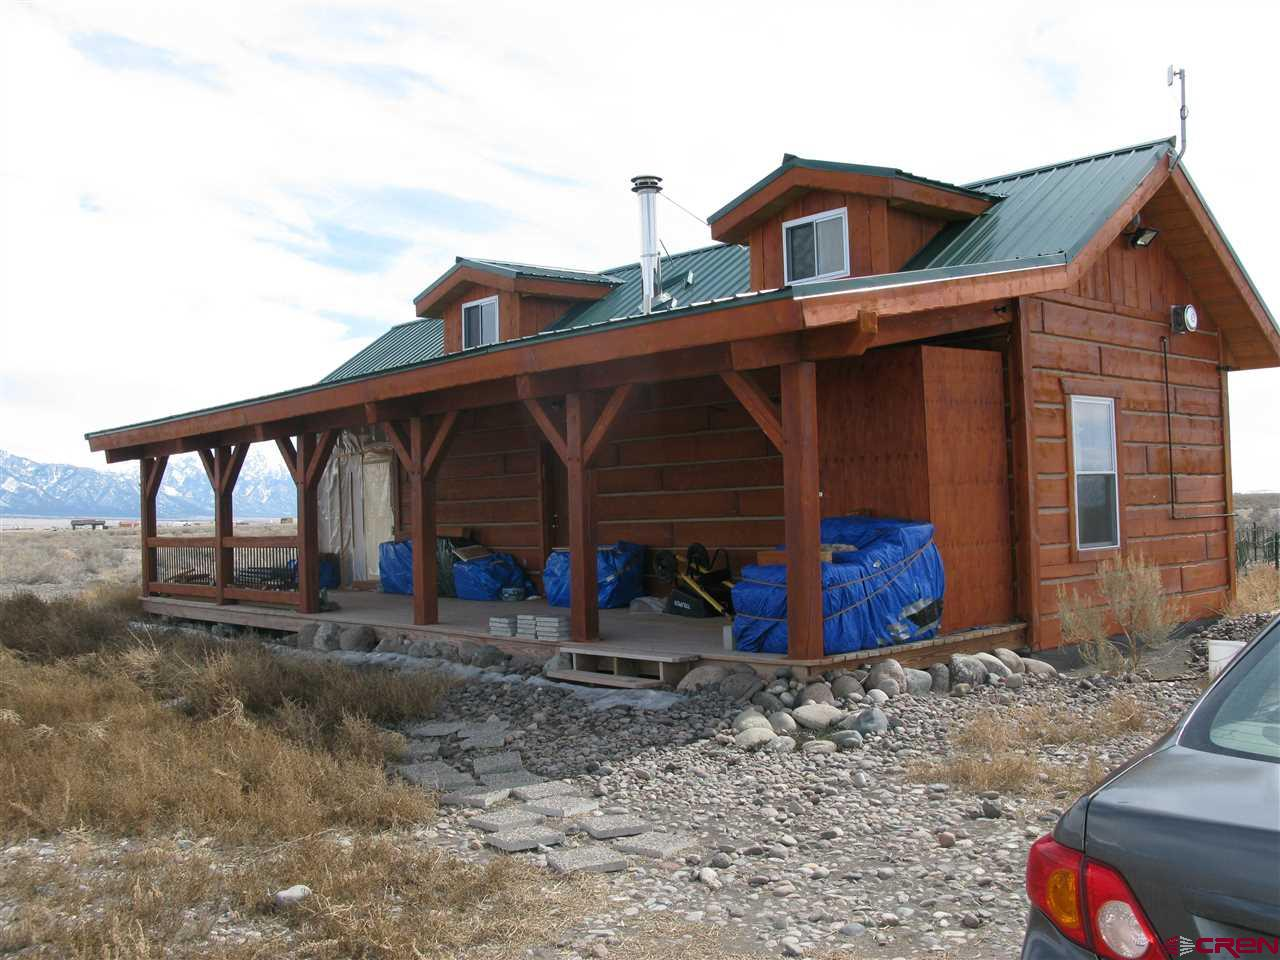 MLS# 767667 - 57254 Golden Hill Ave , Moffat, CO 81143